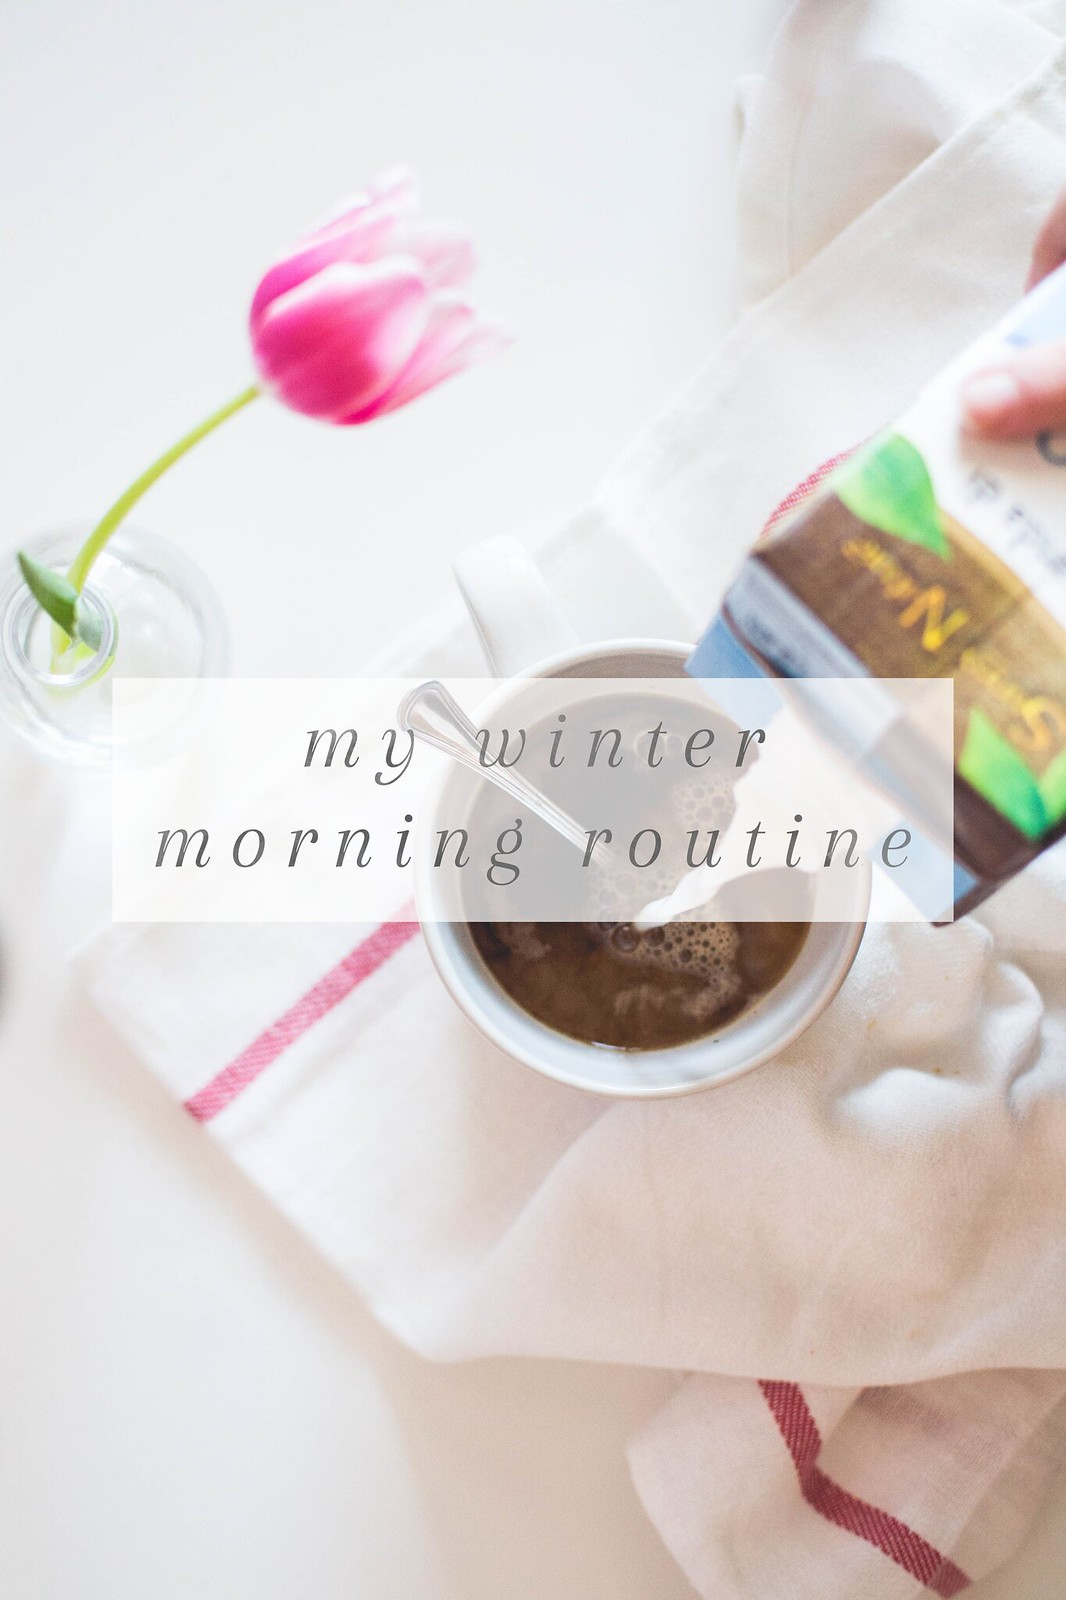 My Winter Morning Routine